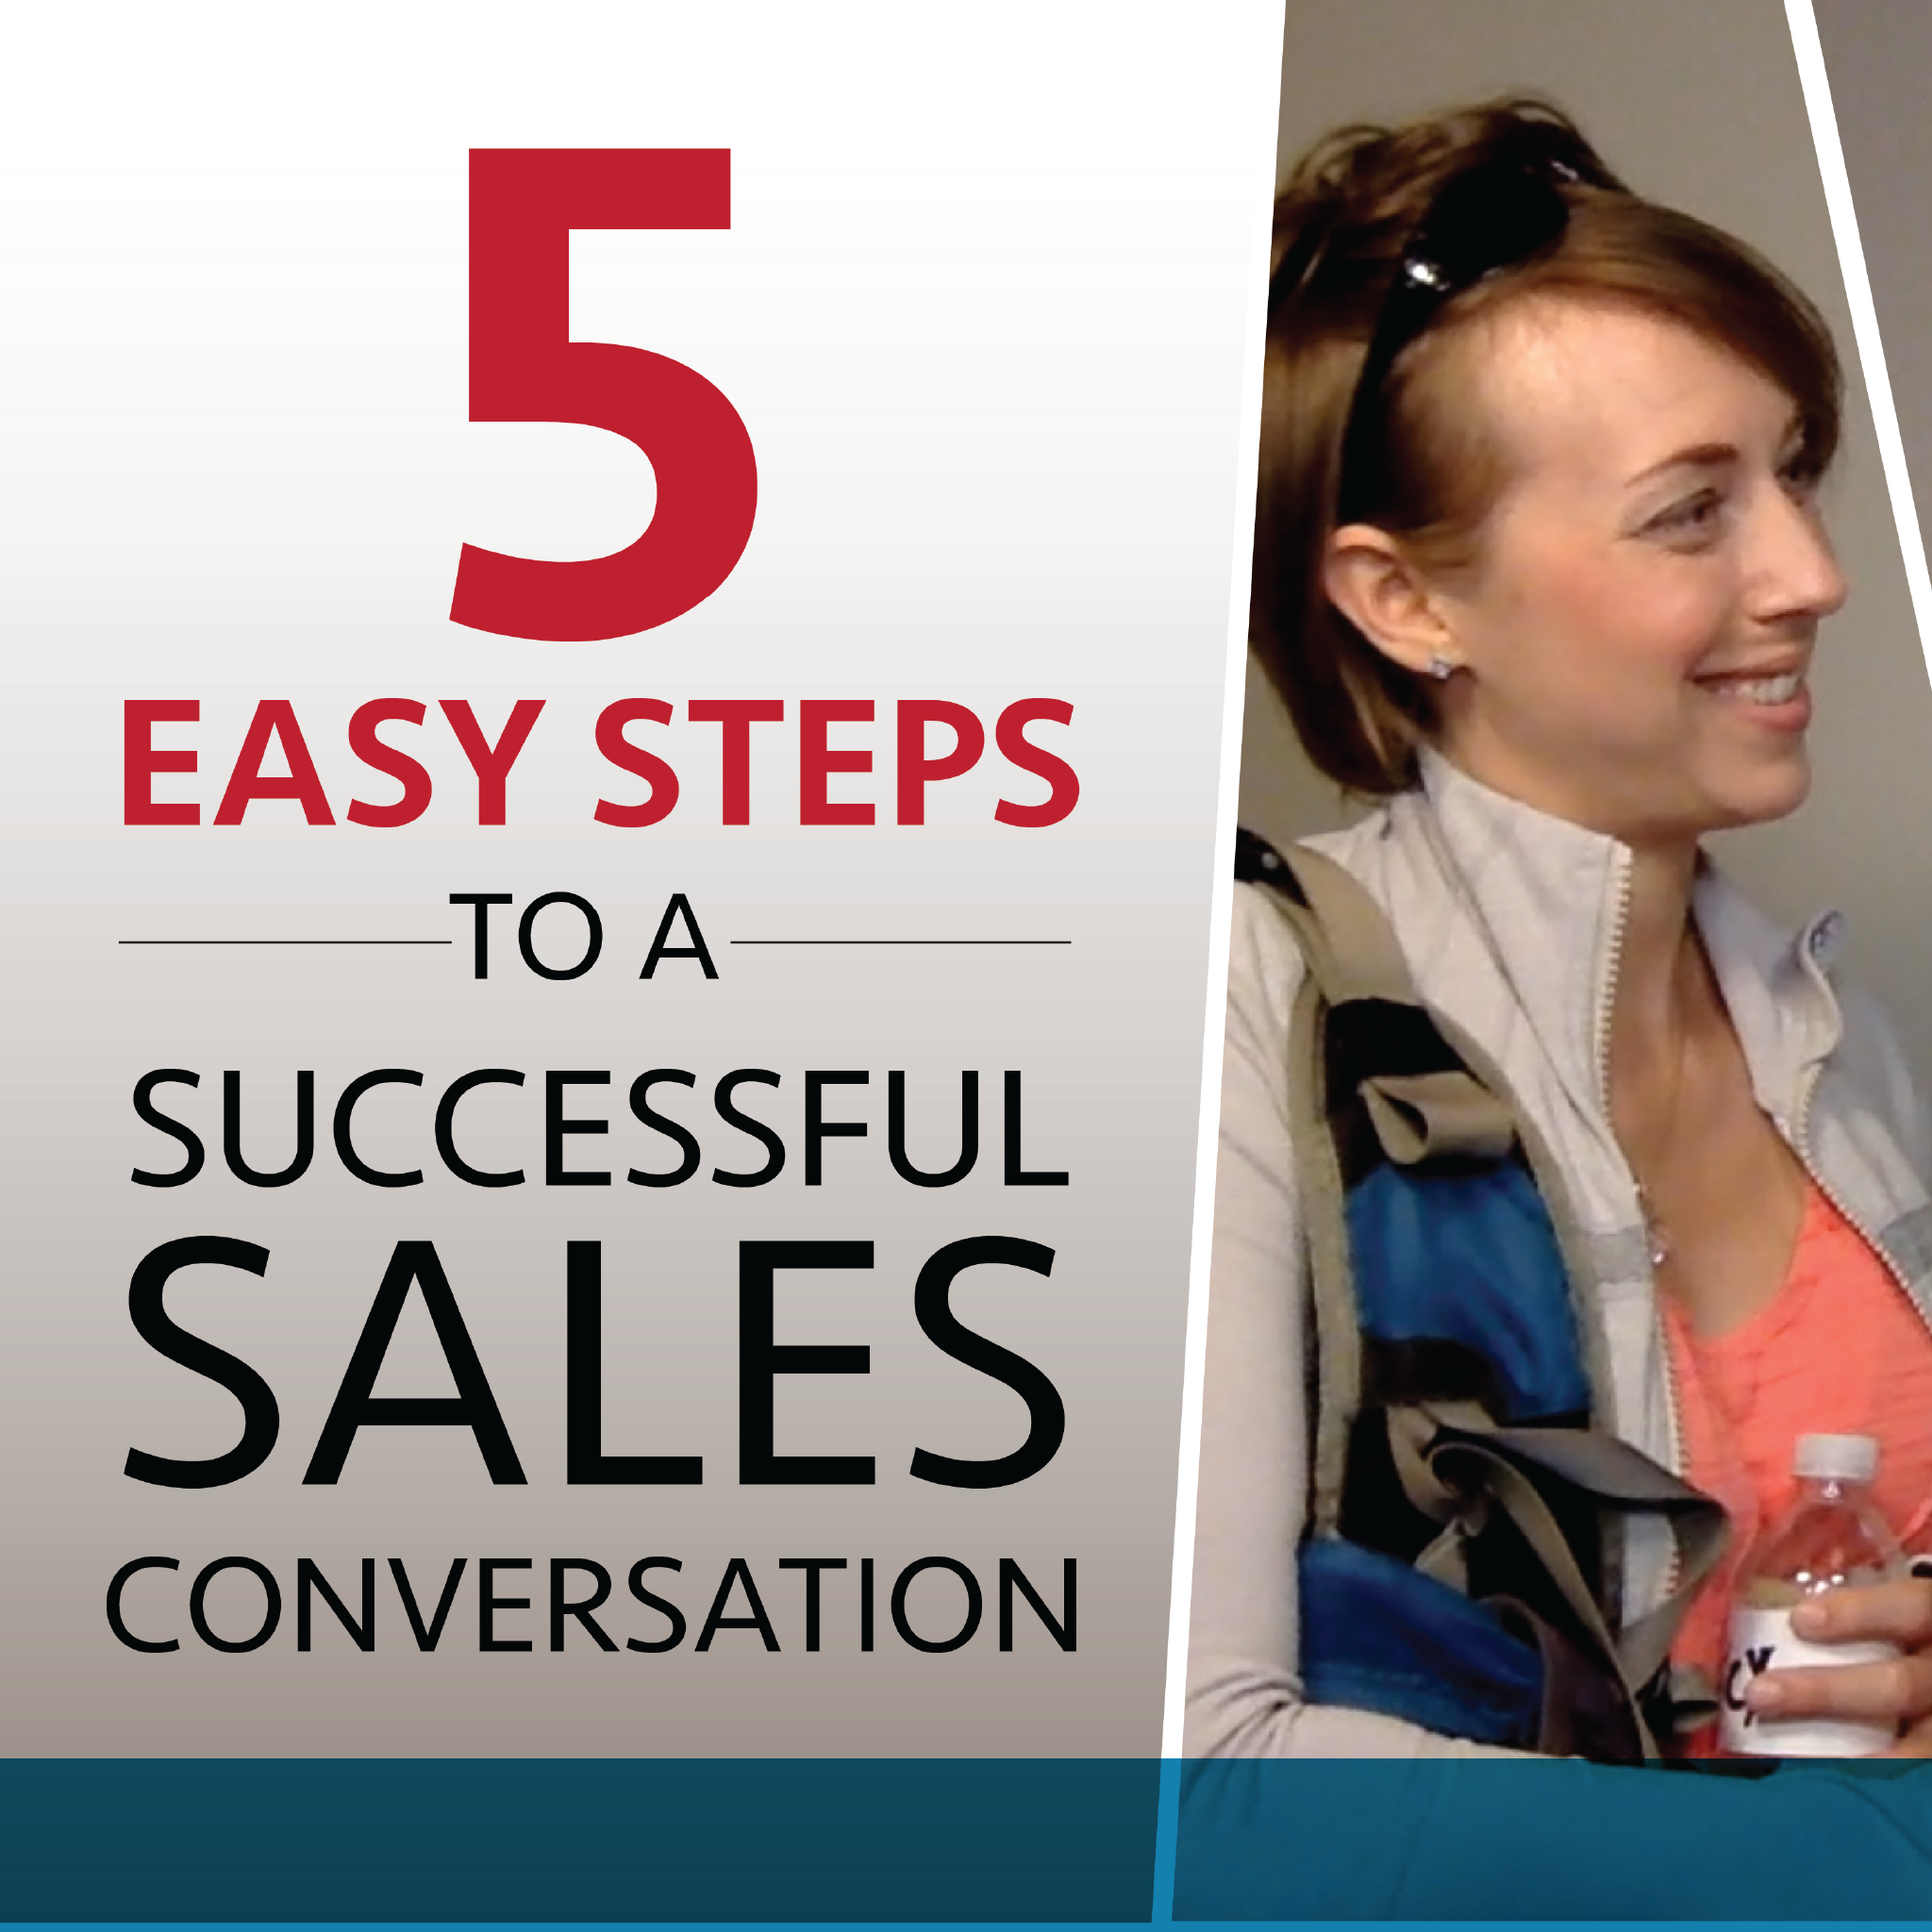 Sales Training Strategies: Face To Face Selling Tips: Stop Traffic W/ Icebreakers